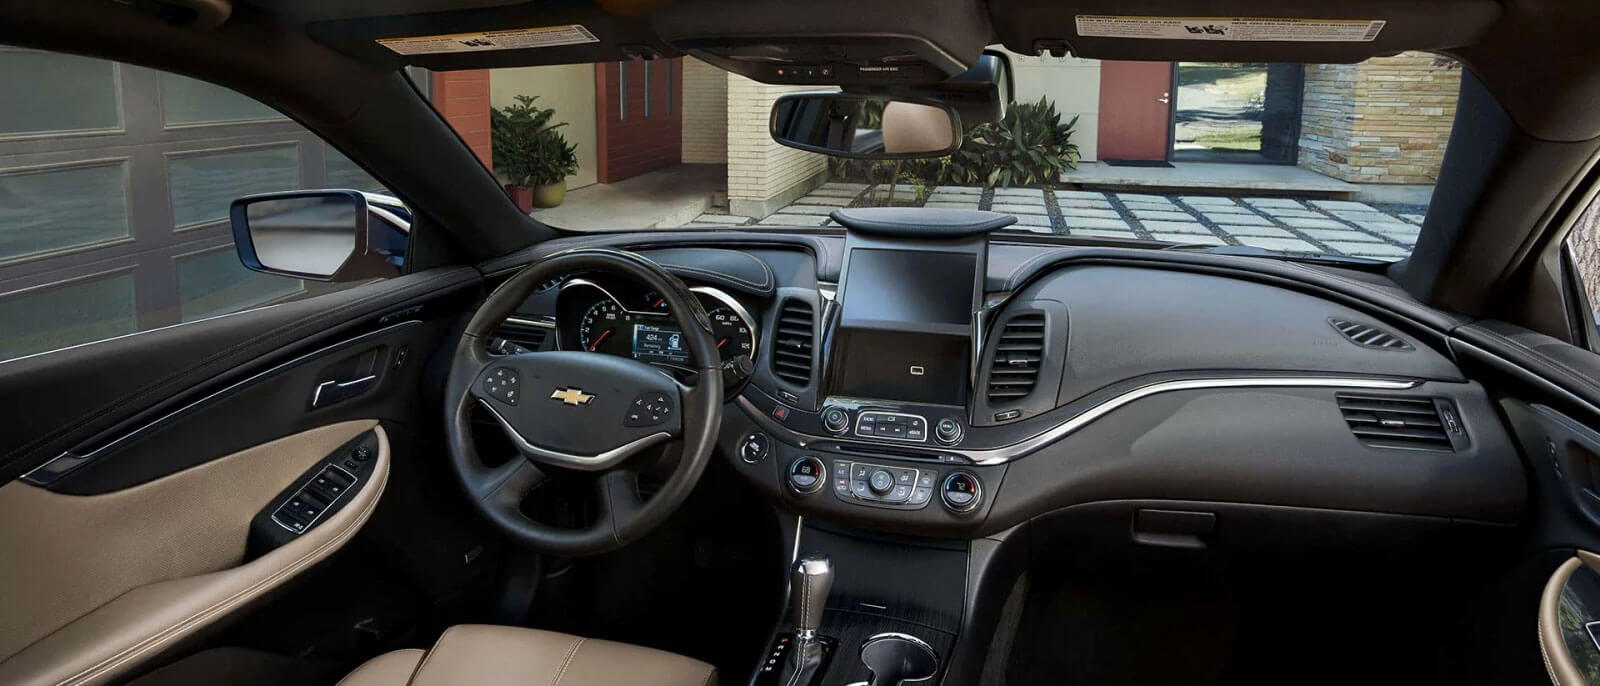 The black and tan interior of the front area of the 2017 Impala is shown with a touchscreen and other high tech and safety features.